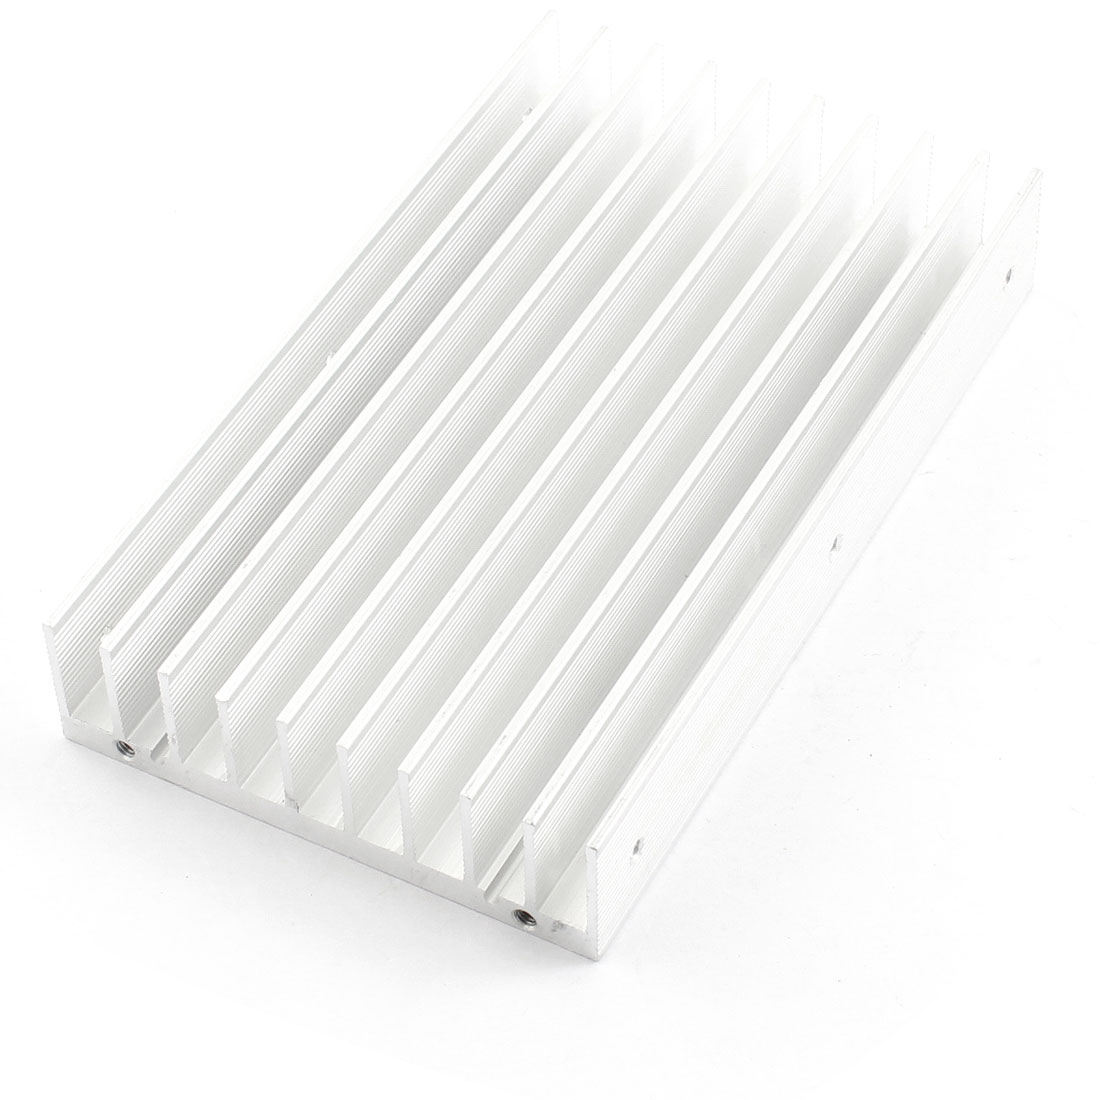 130mm x 76mm x 22mm Rectangle Aluminium Profile Heatsink Heat Dissipate Cooling Fin Silver Tone